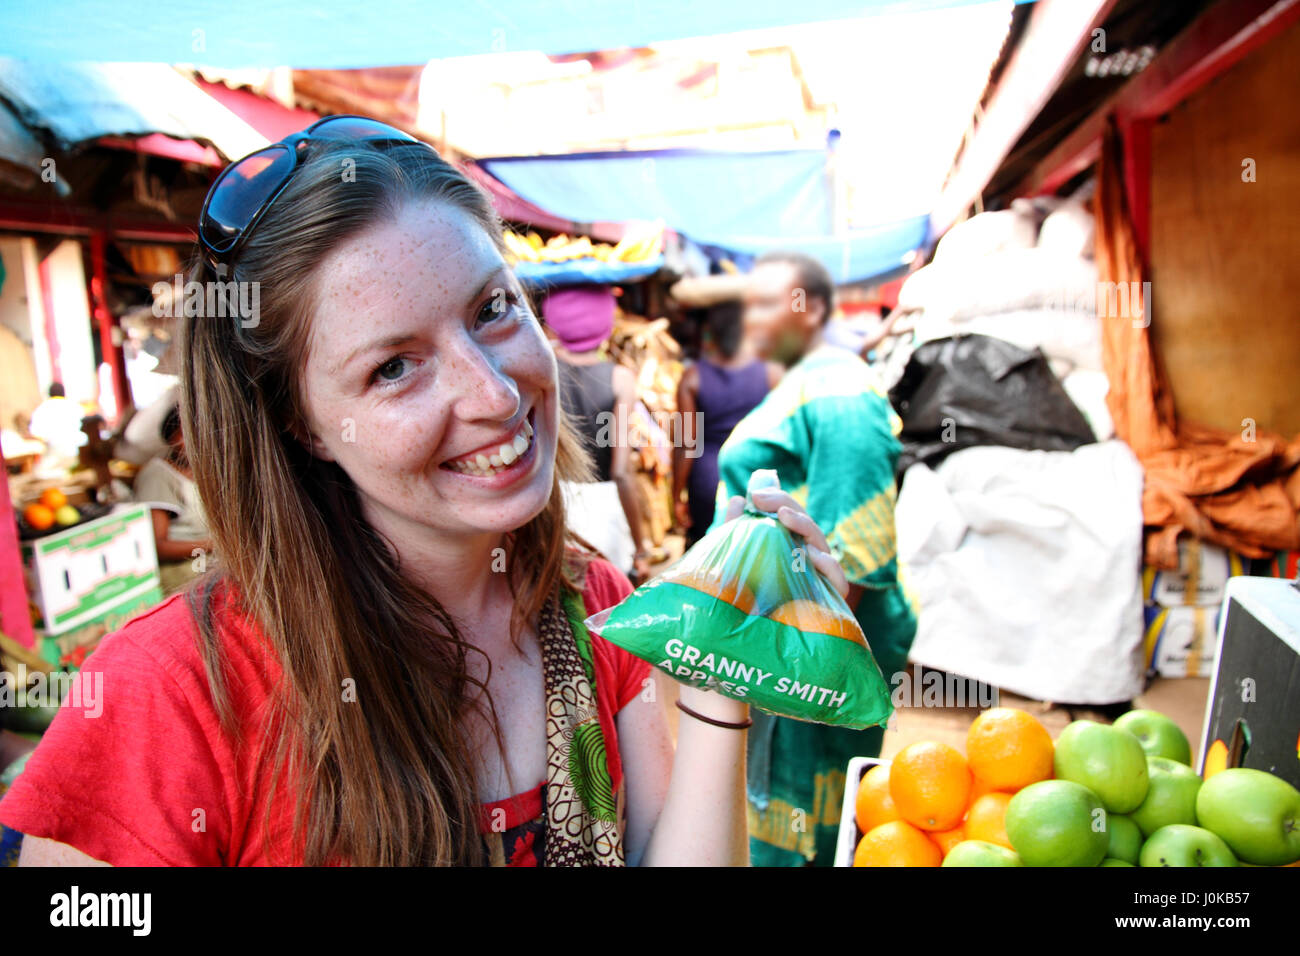 A young freckled Caucasian woman smiles with a bag of apples and oranges she bought in the market - Stock Image